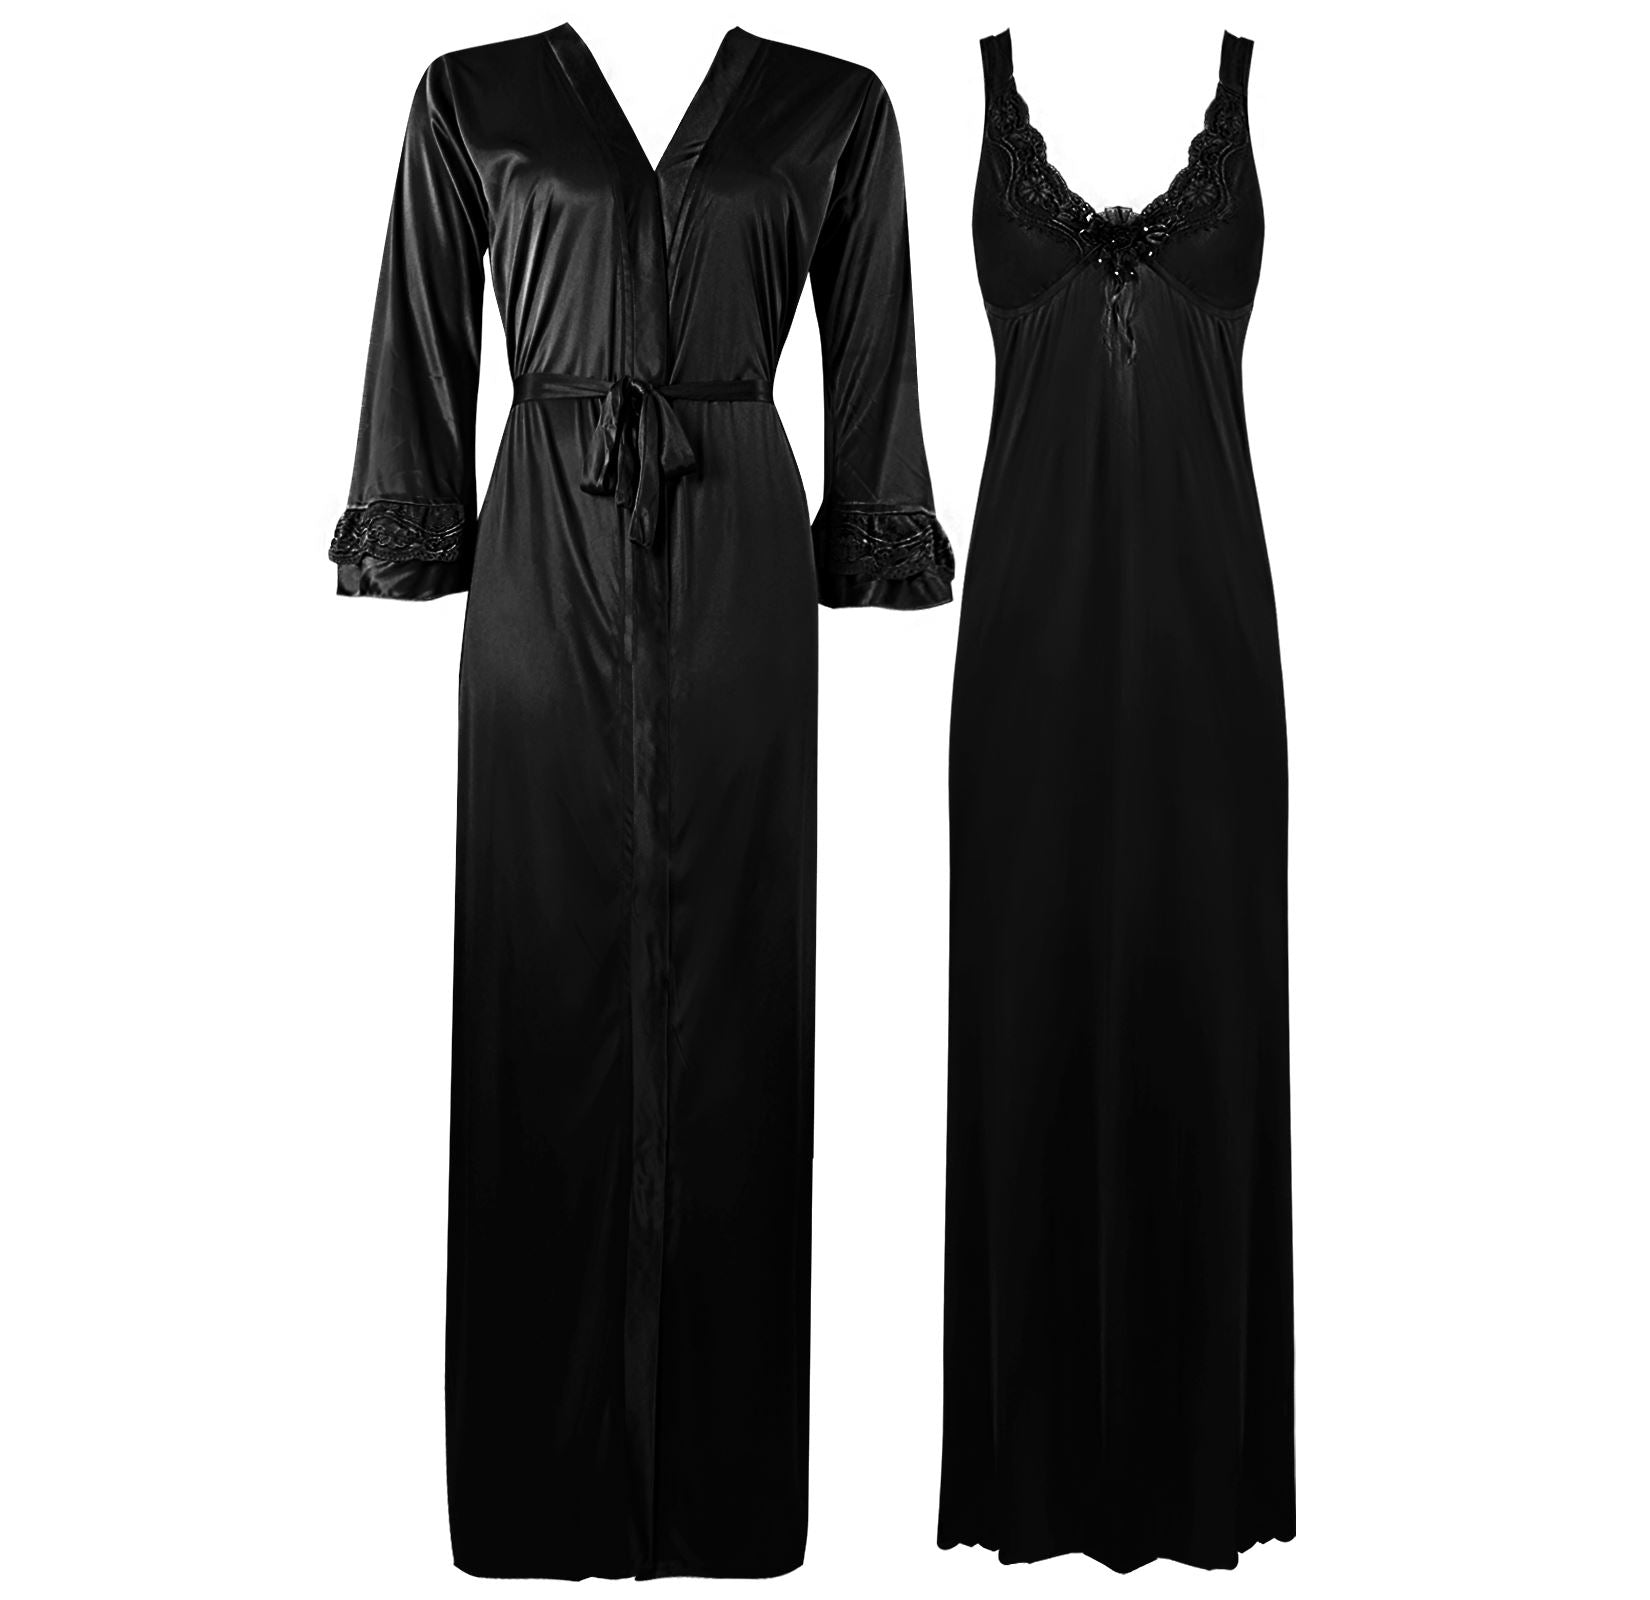 Color: Black 2 Piece Satin Nighty and Robe With Long Sleeve Dressing Gown Size: XL